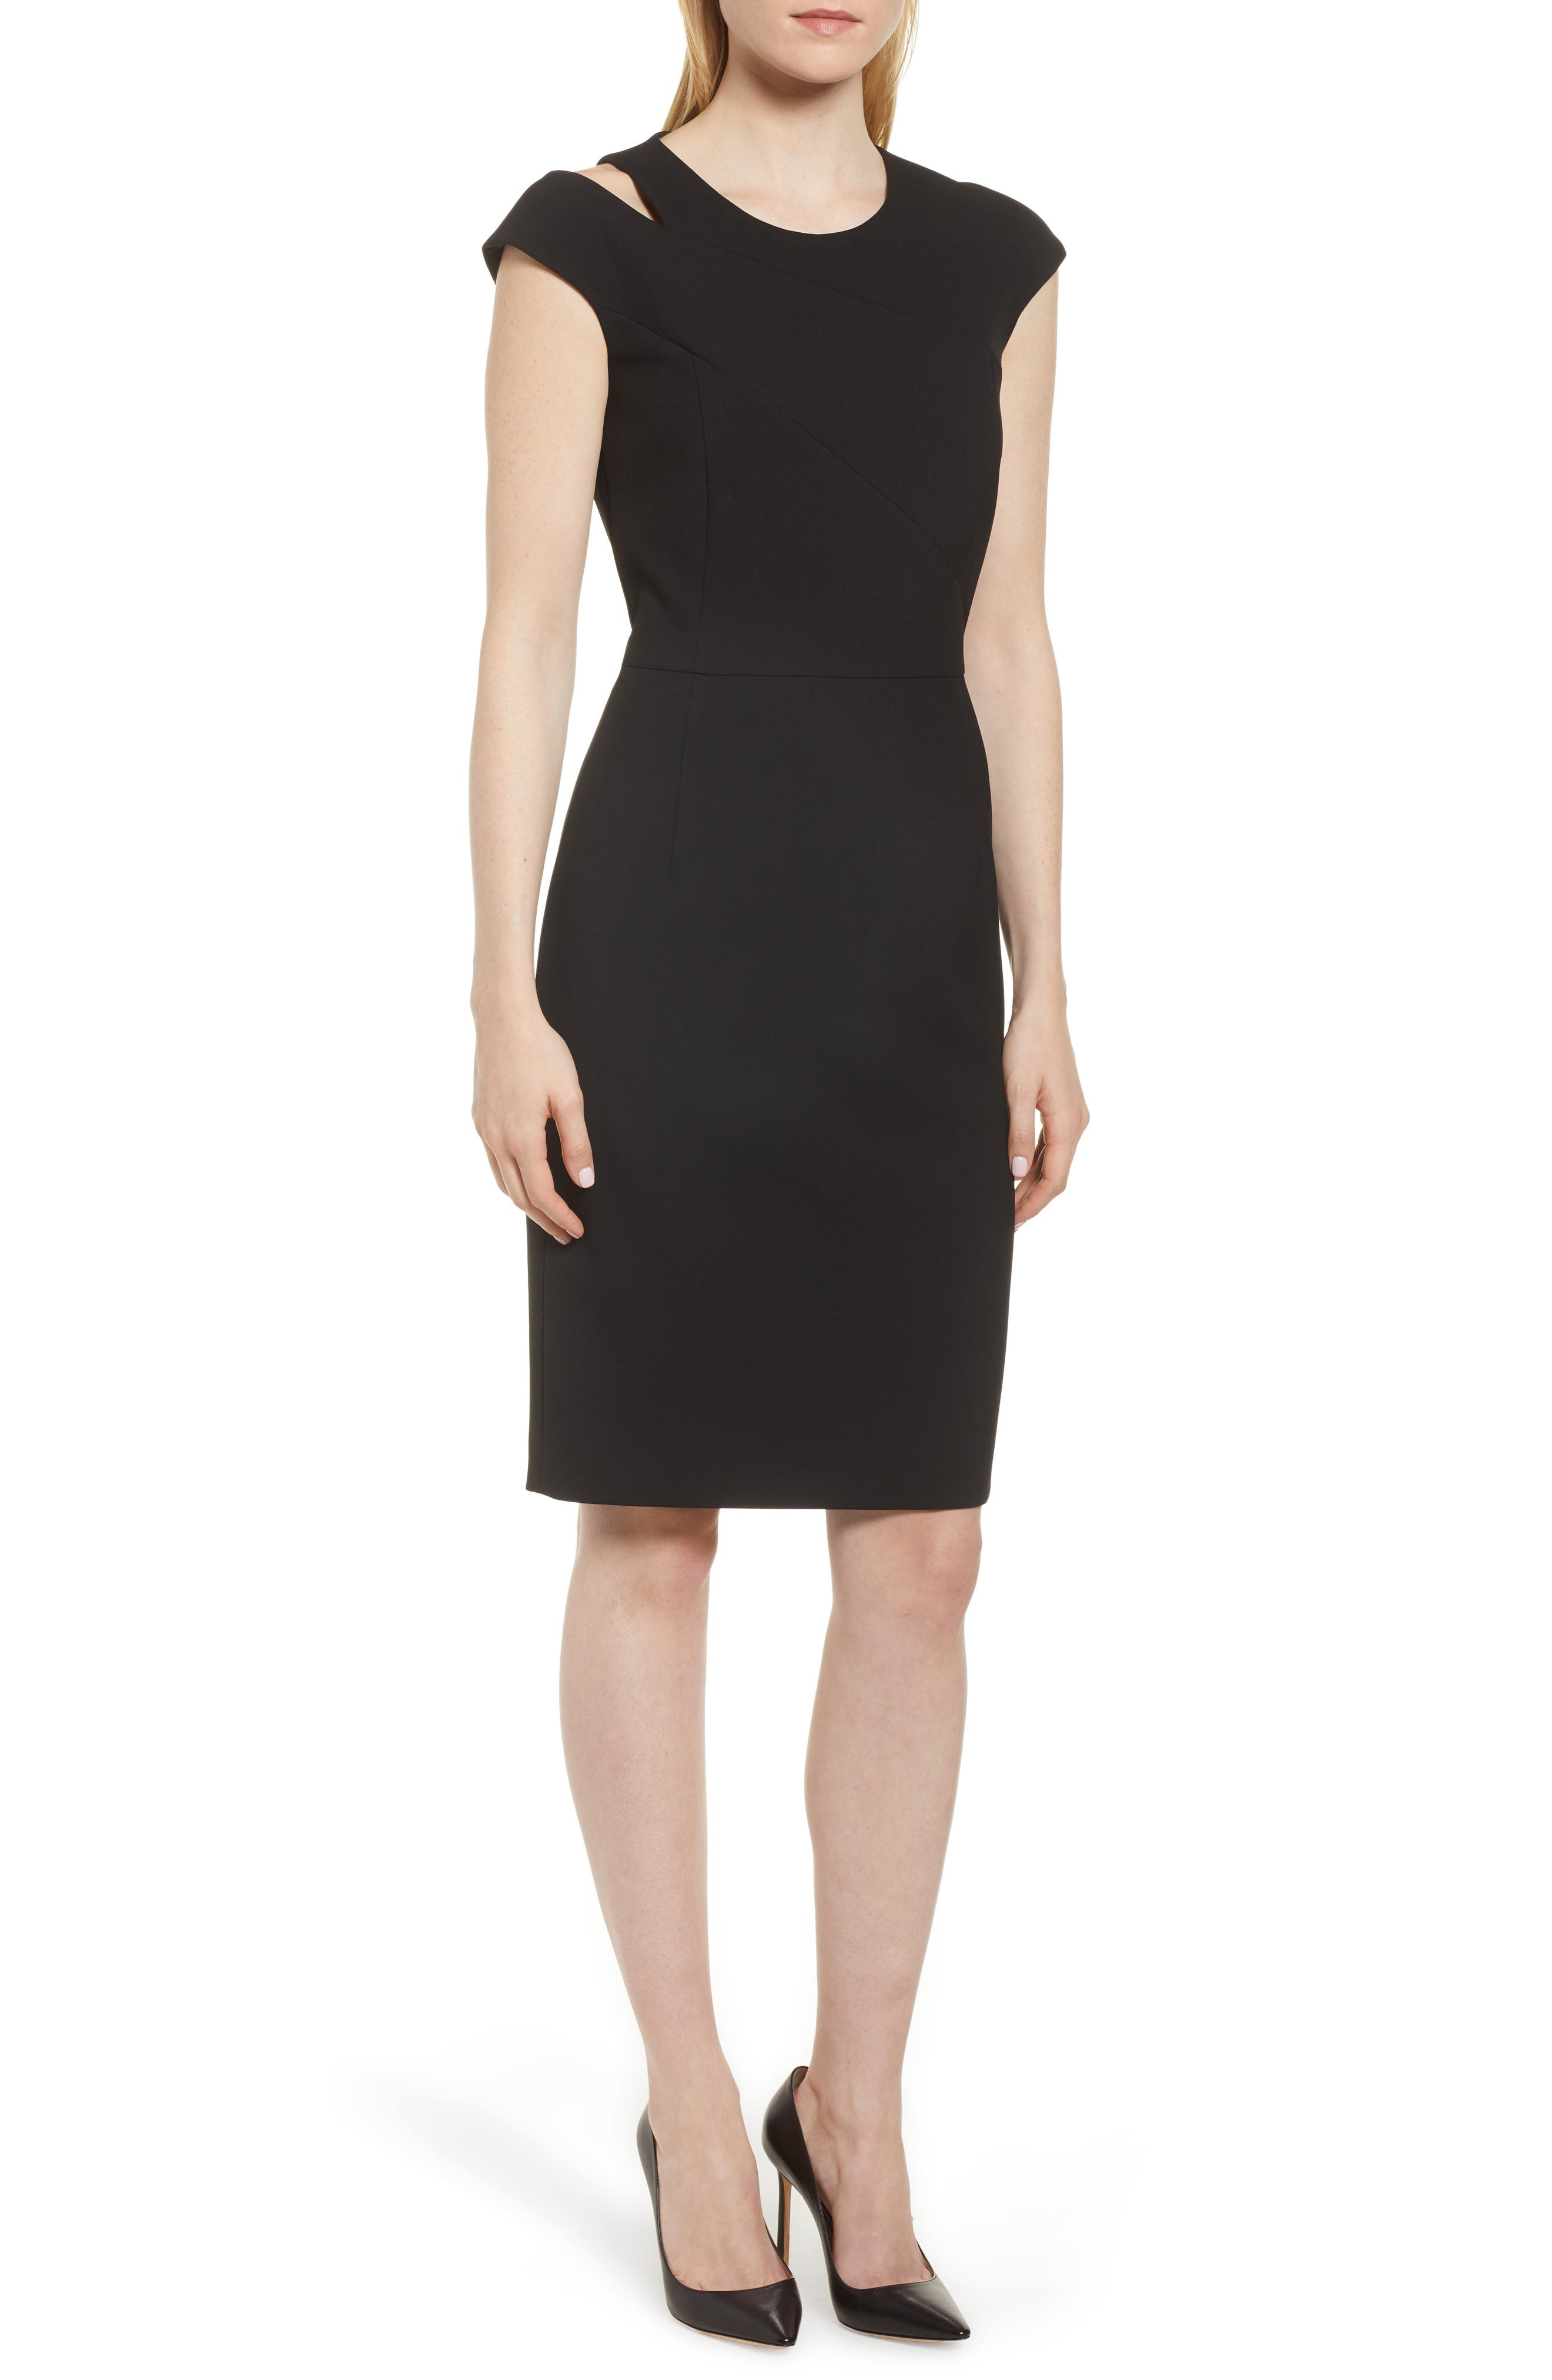 Danouk Shoulder Cutout Dress,                             Main thumbnail 1, color,                             Black